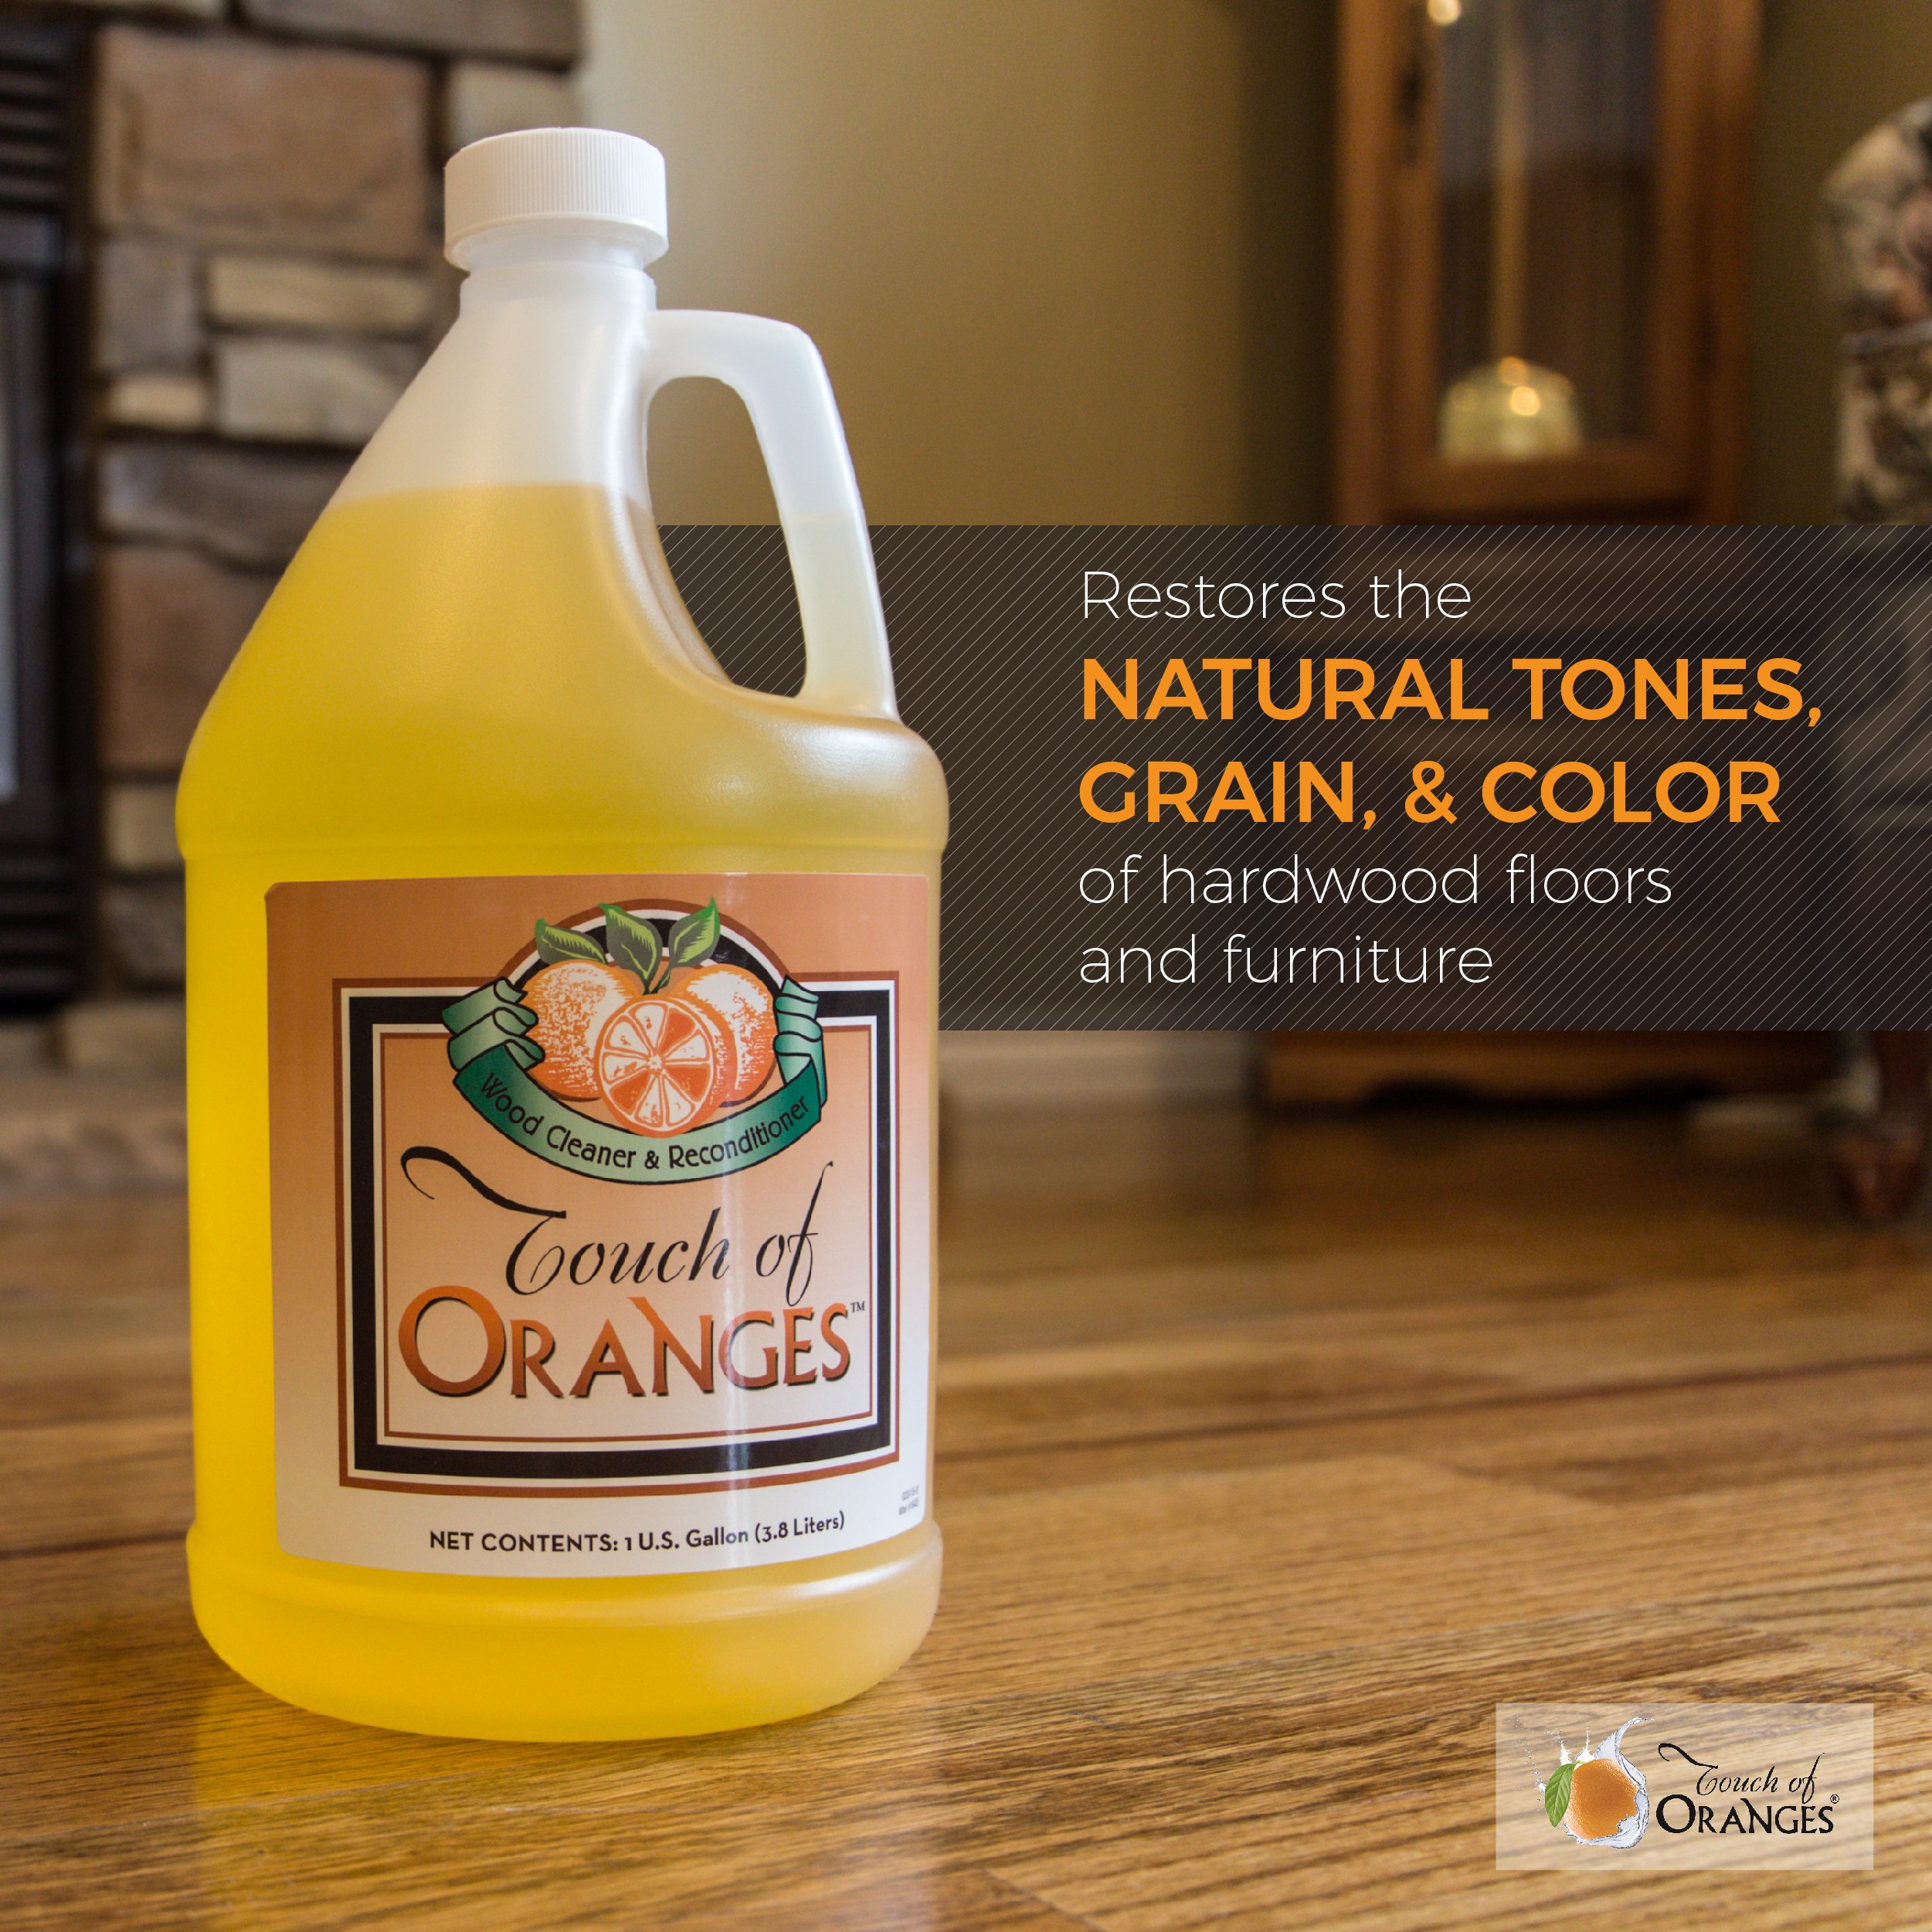 Touch of Oranges Hardwood Floor Cleaner and Touch of Beeswax for Wood Polish Cleaner and Restorer Bundle (1 gallon Cleaner & 1/2 gallon Polish) by Touch Of Oranges (Image #2)